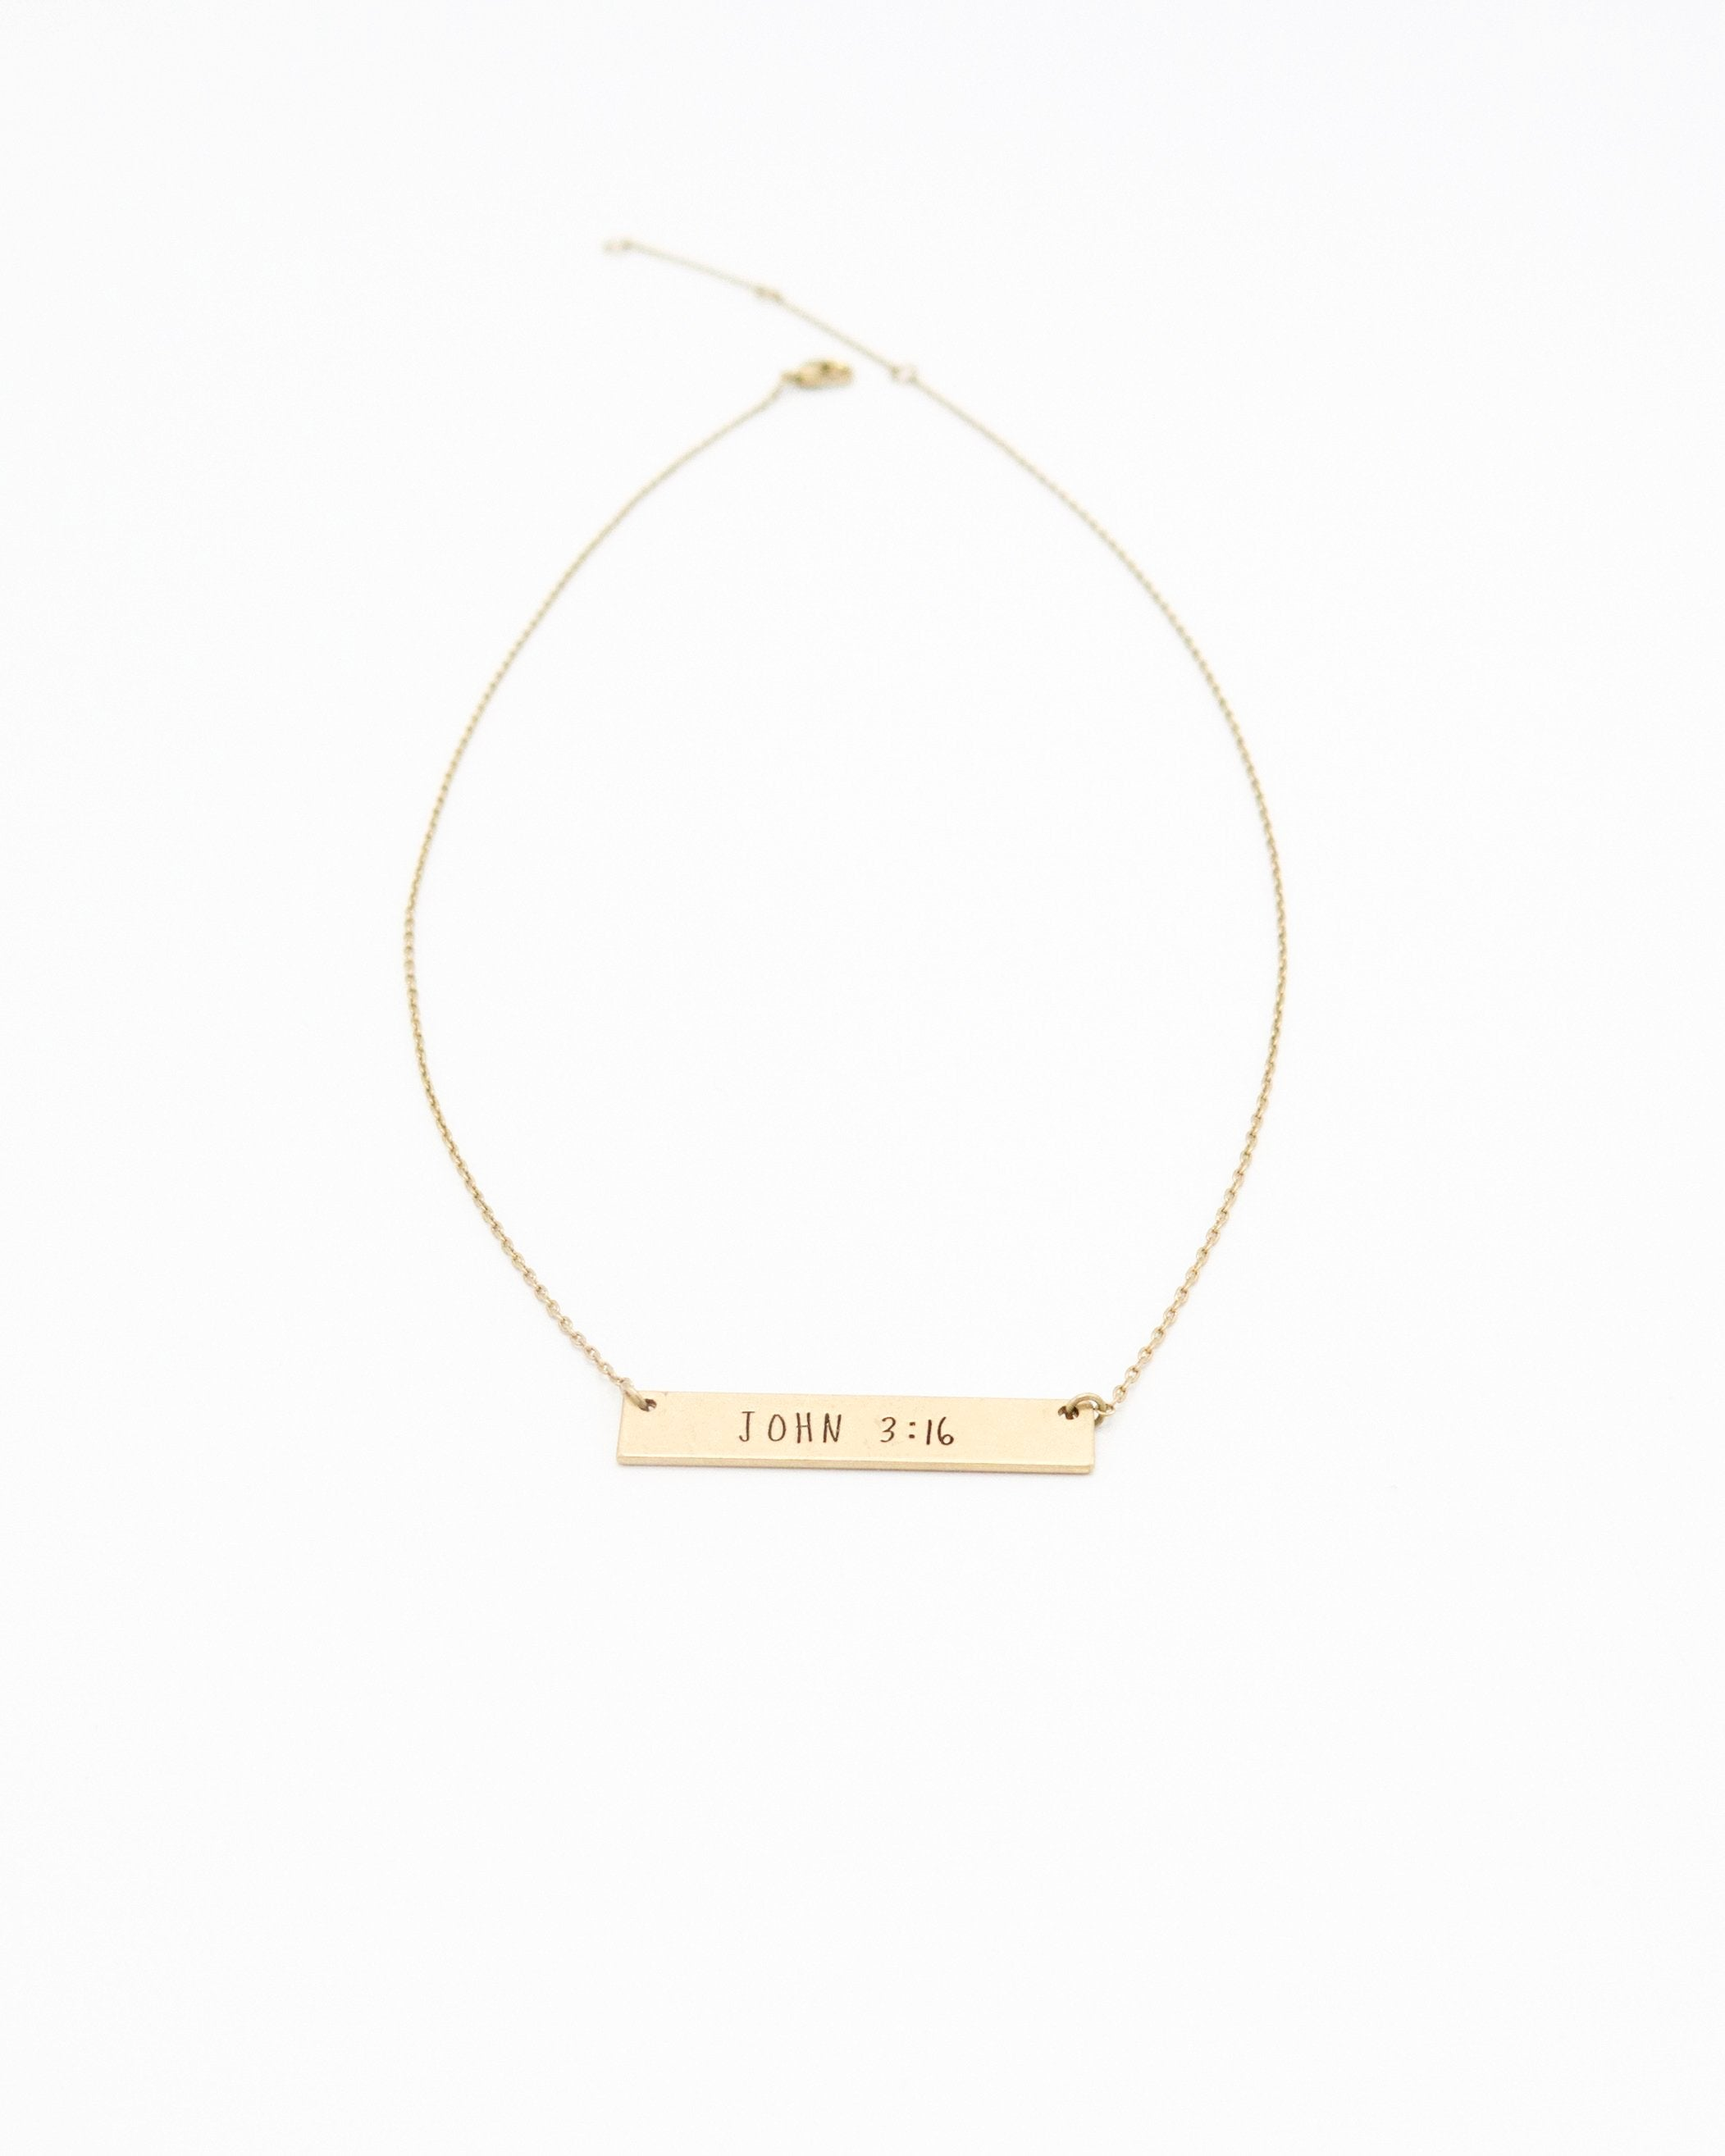 John 3:16 Inspirational Bar Necklace in gold